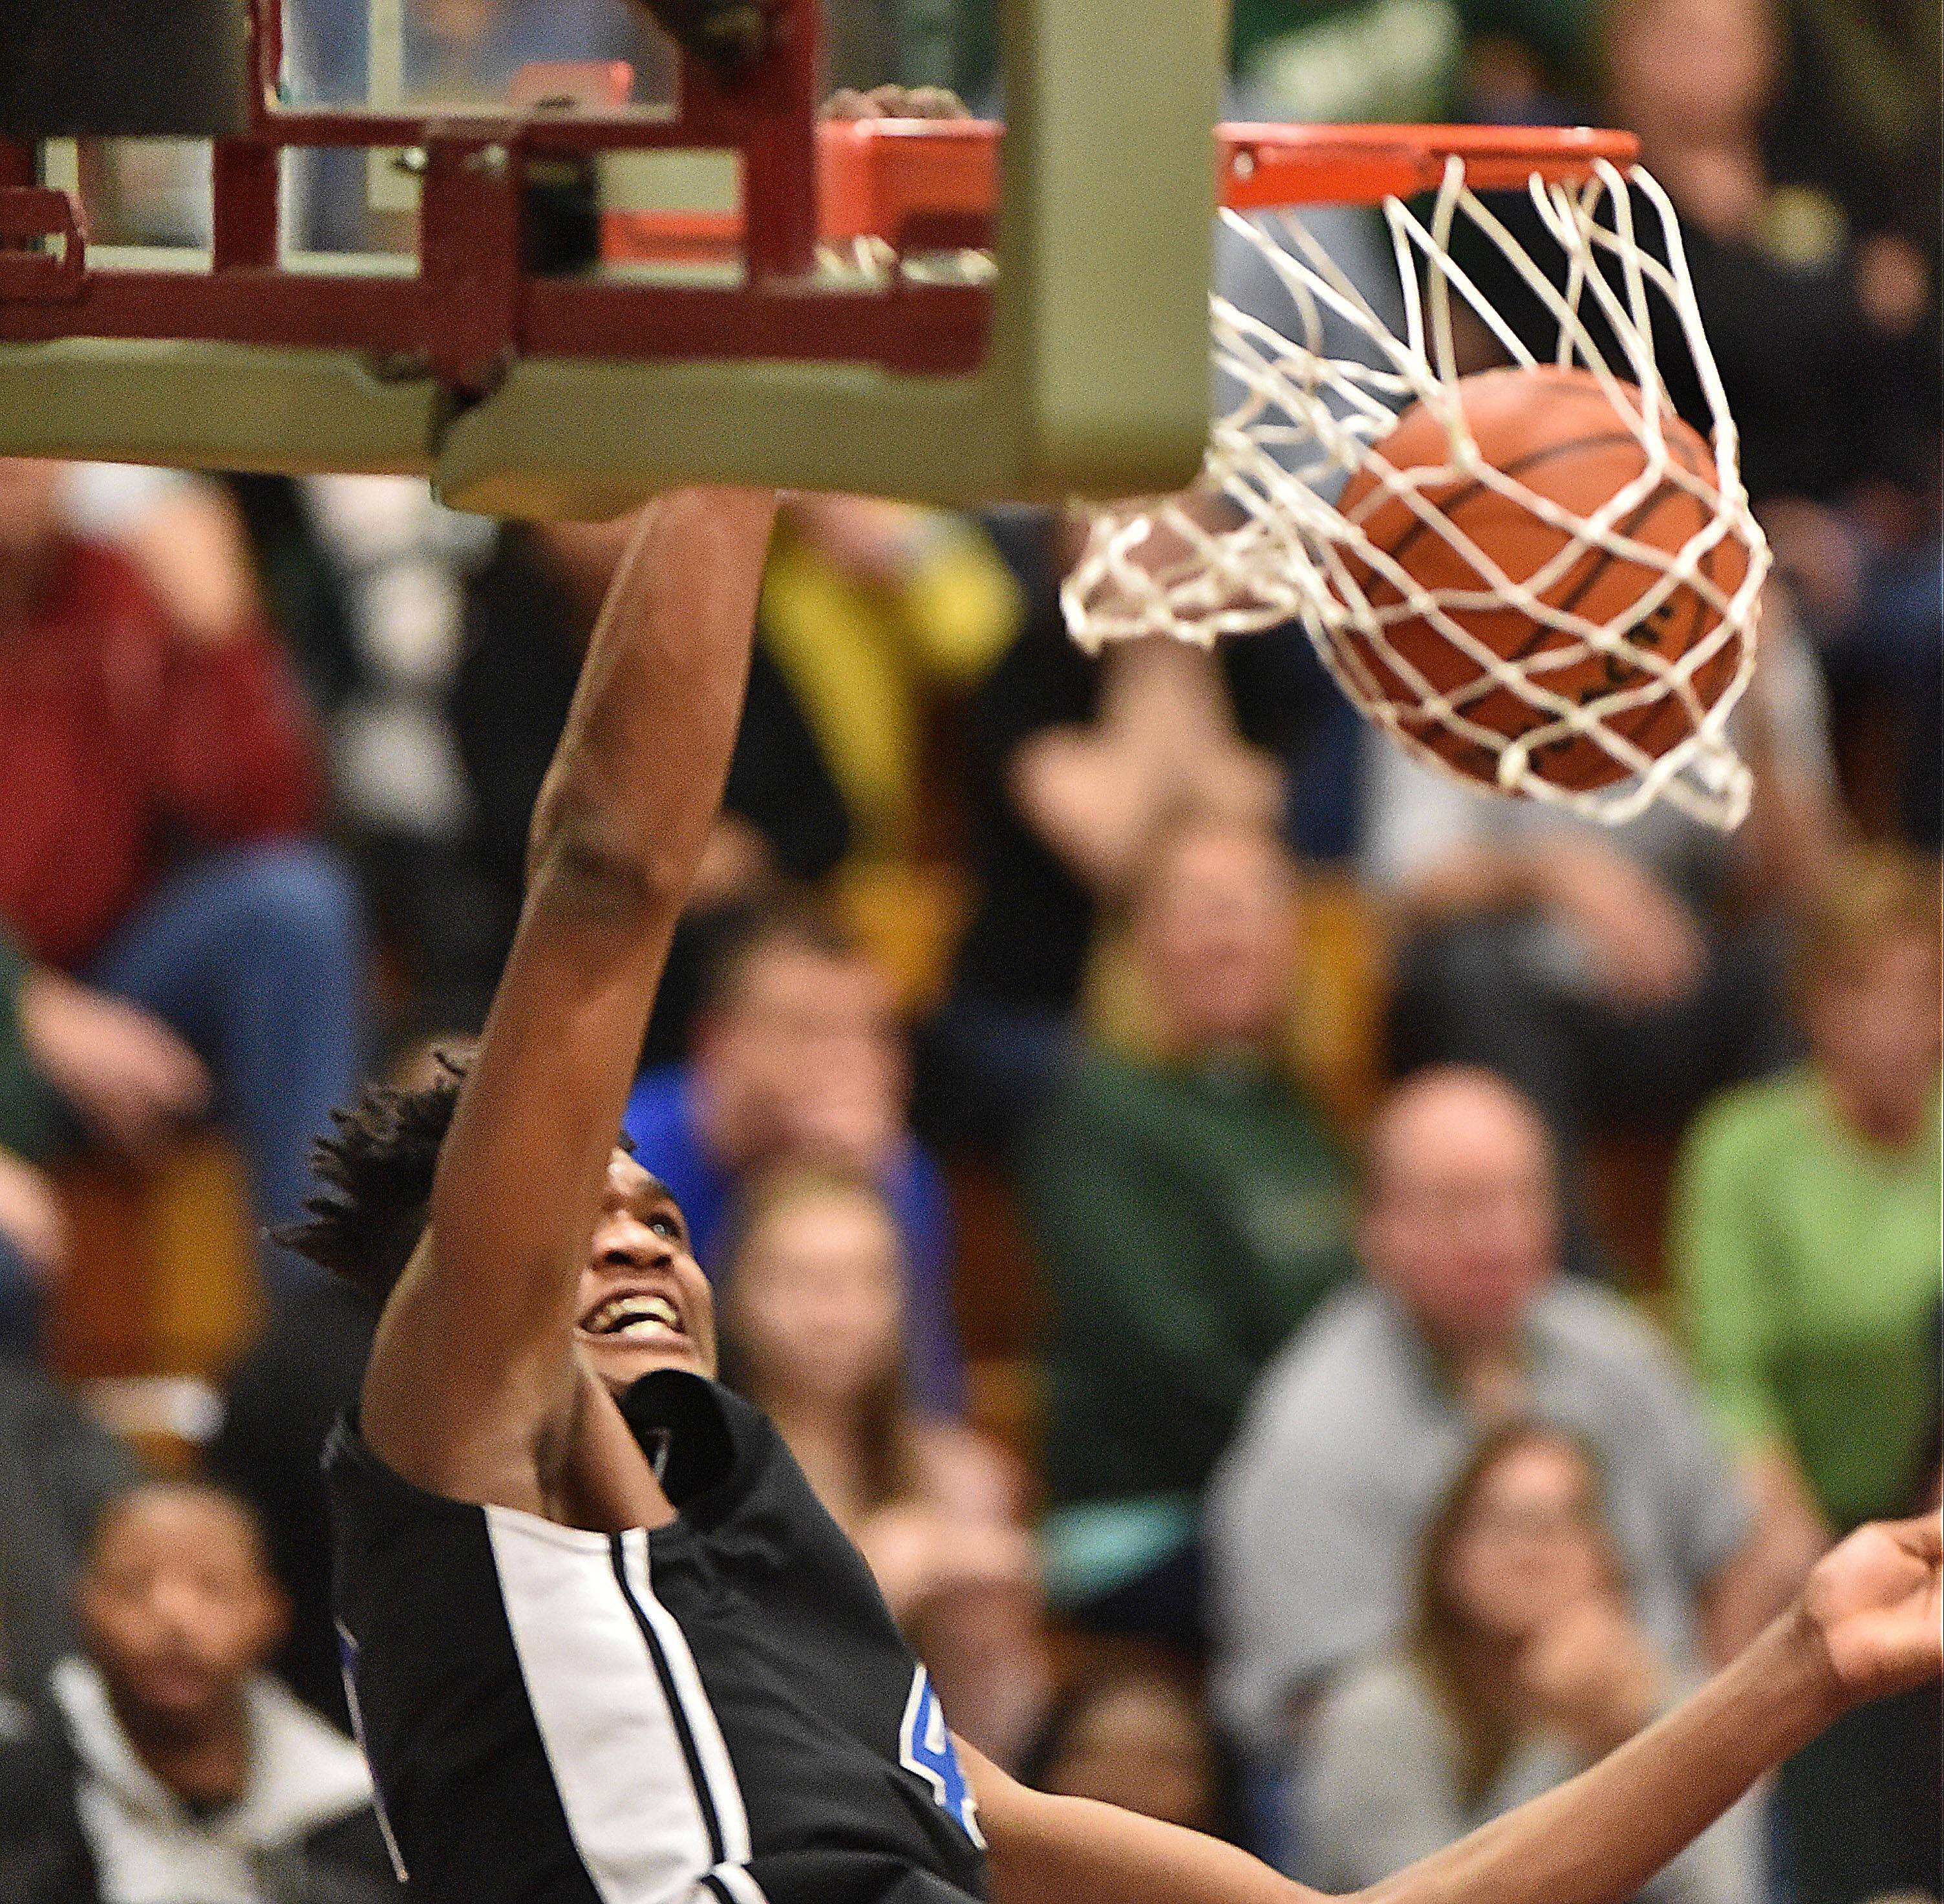 Larkin junior Jalen Shaw finishes off a dunk against Rockford Boylan during the Royals' 62-51 Class 4A Elgin sectional semifinal win Tuesday night. Larkin battles Jacobs at 7 p.m. Friday for the sectional title.